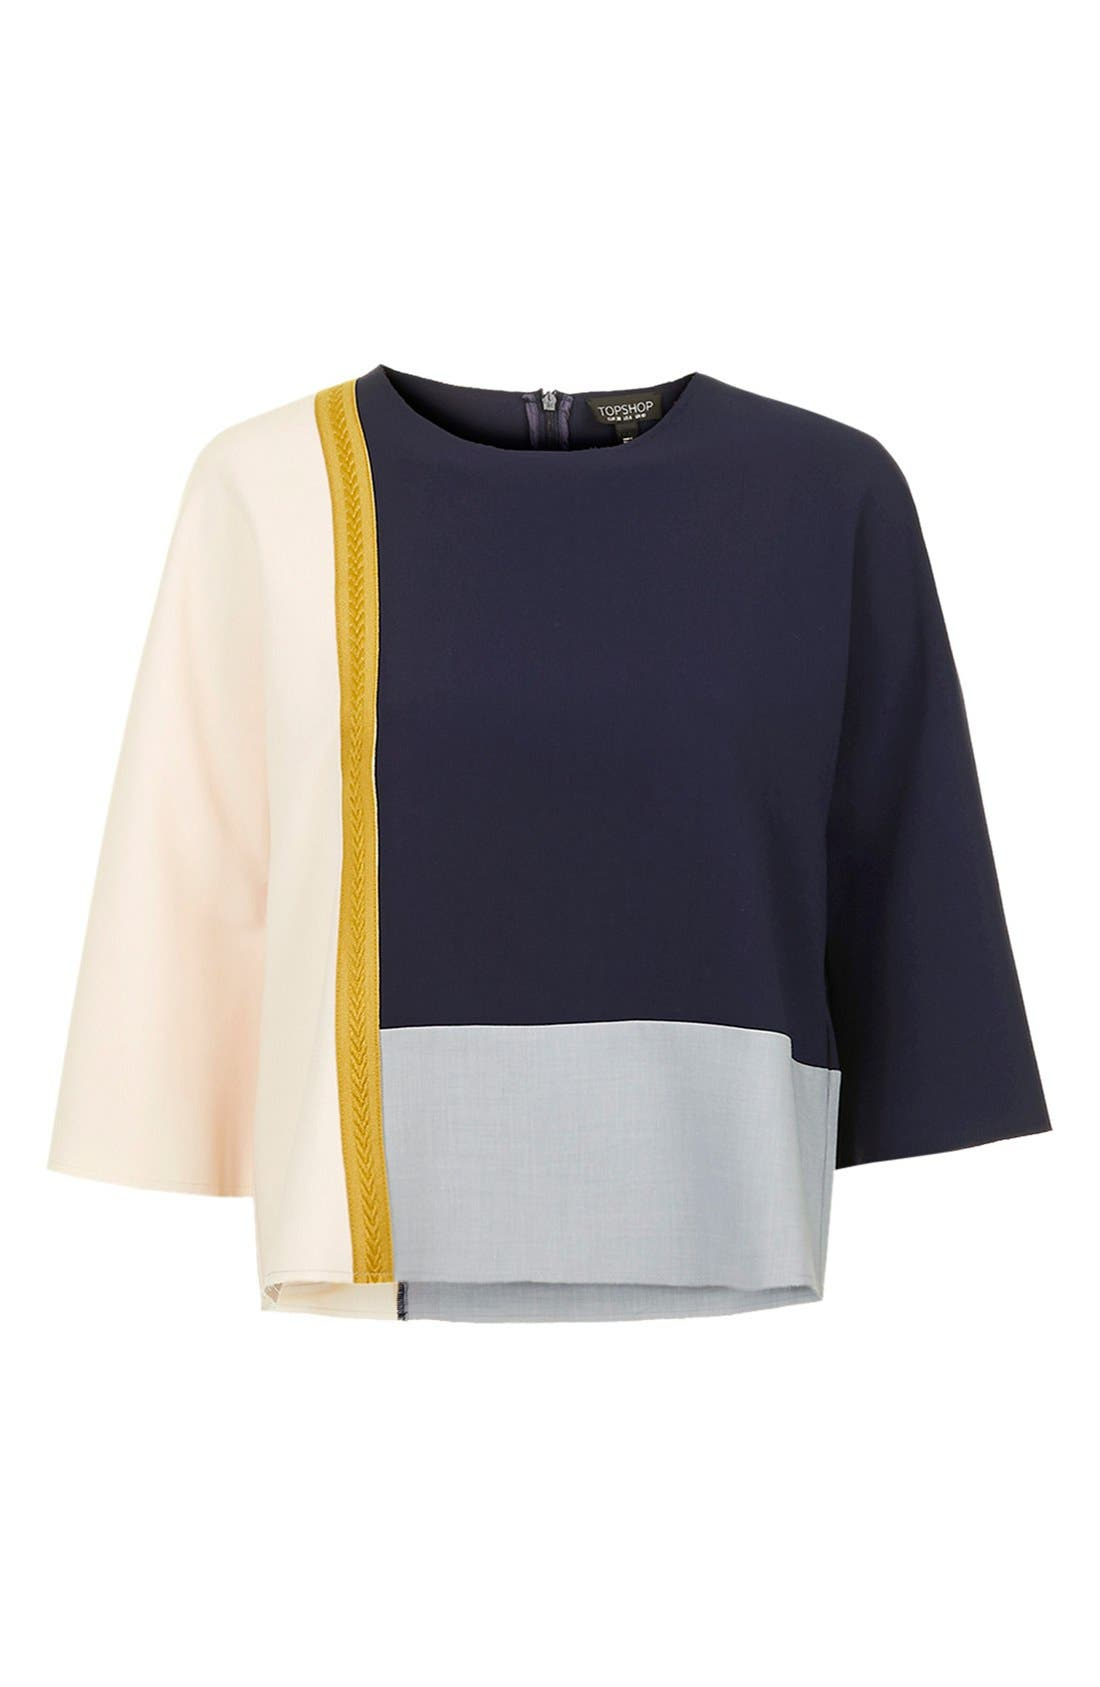 TOPSHOP, Colorblock Boxy Top, Alternate thumbnail 4, color, 410